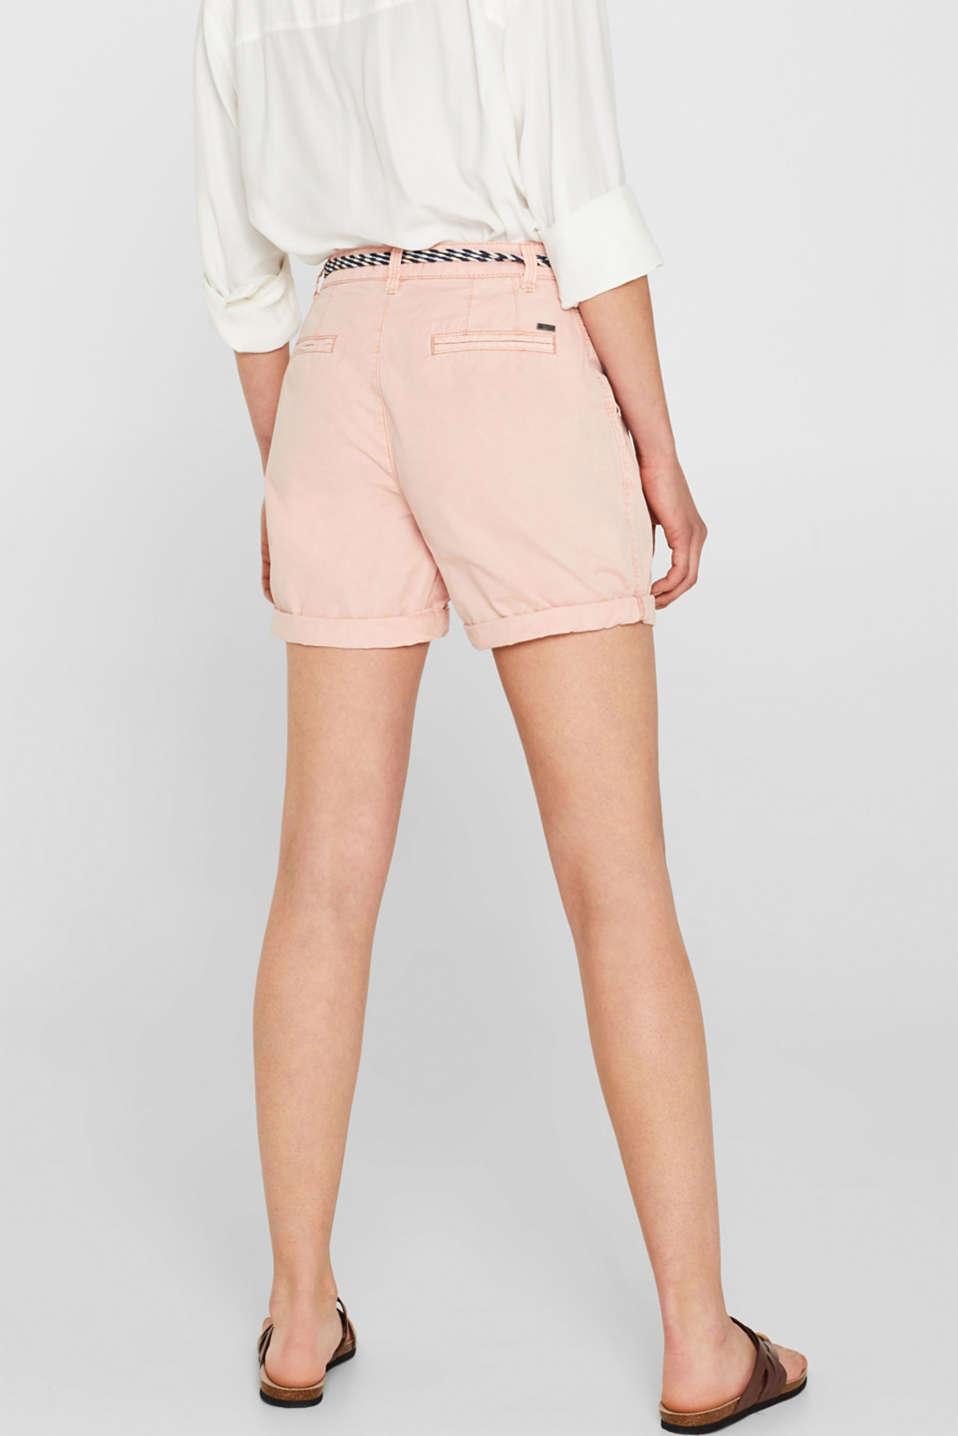 Shorts in a garment-washed look, 100% cotton, LIGHT PINK, detail image number 3